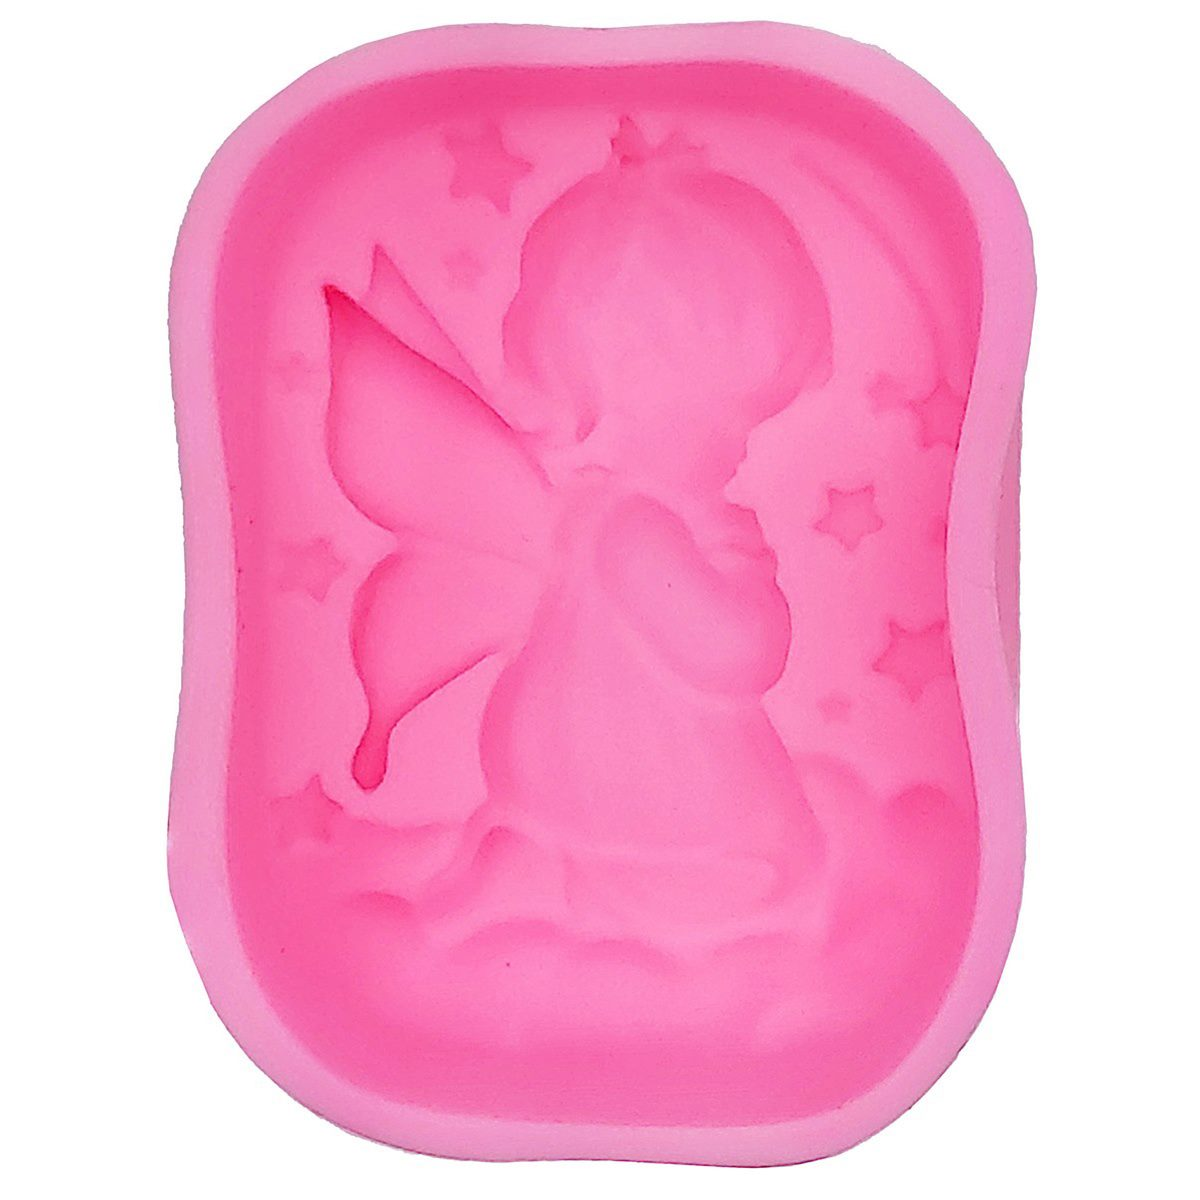 Resin Silicone Mould - Baby Fairy Tale (7.5x6x2.5 cm)